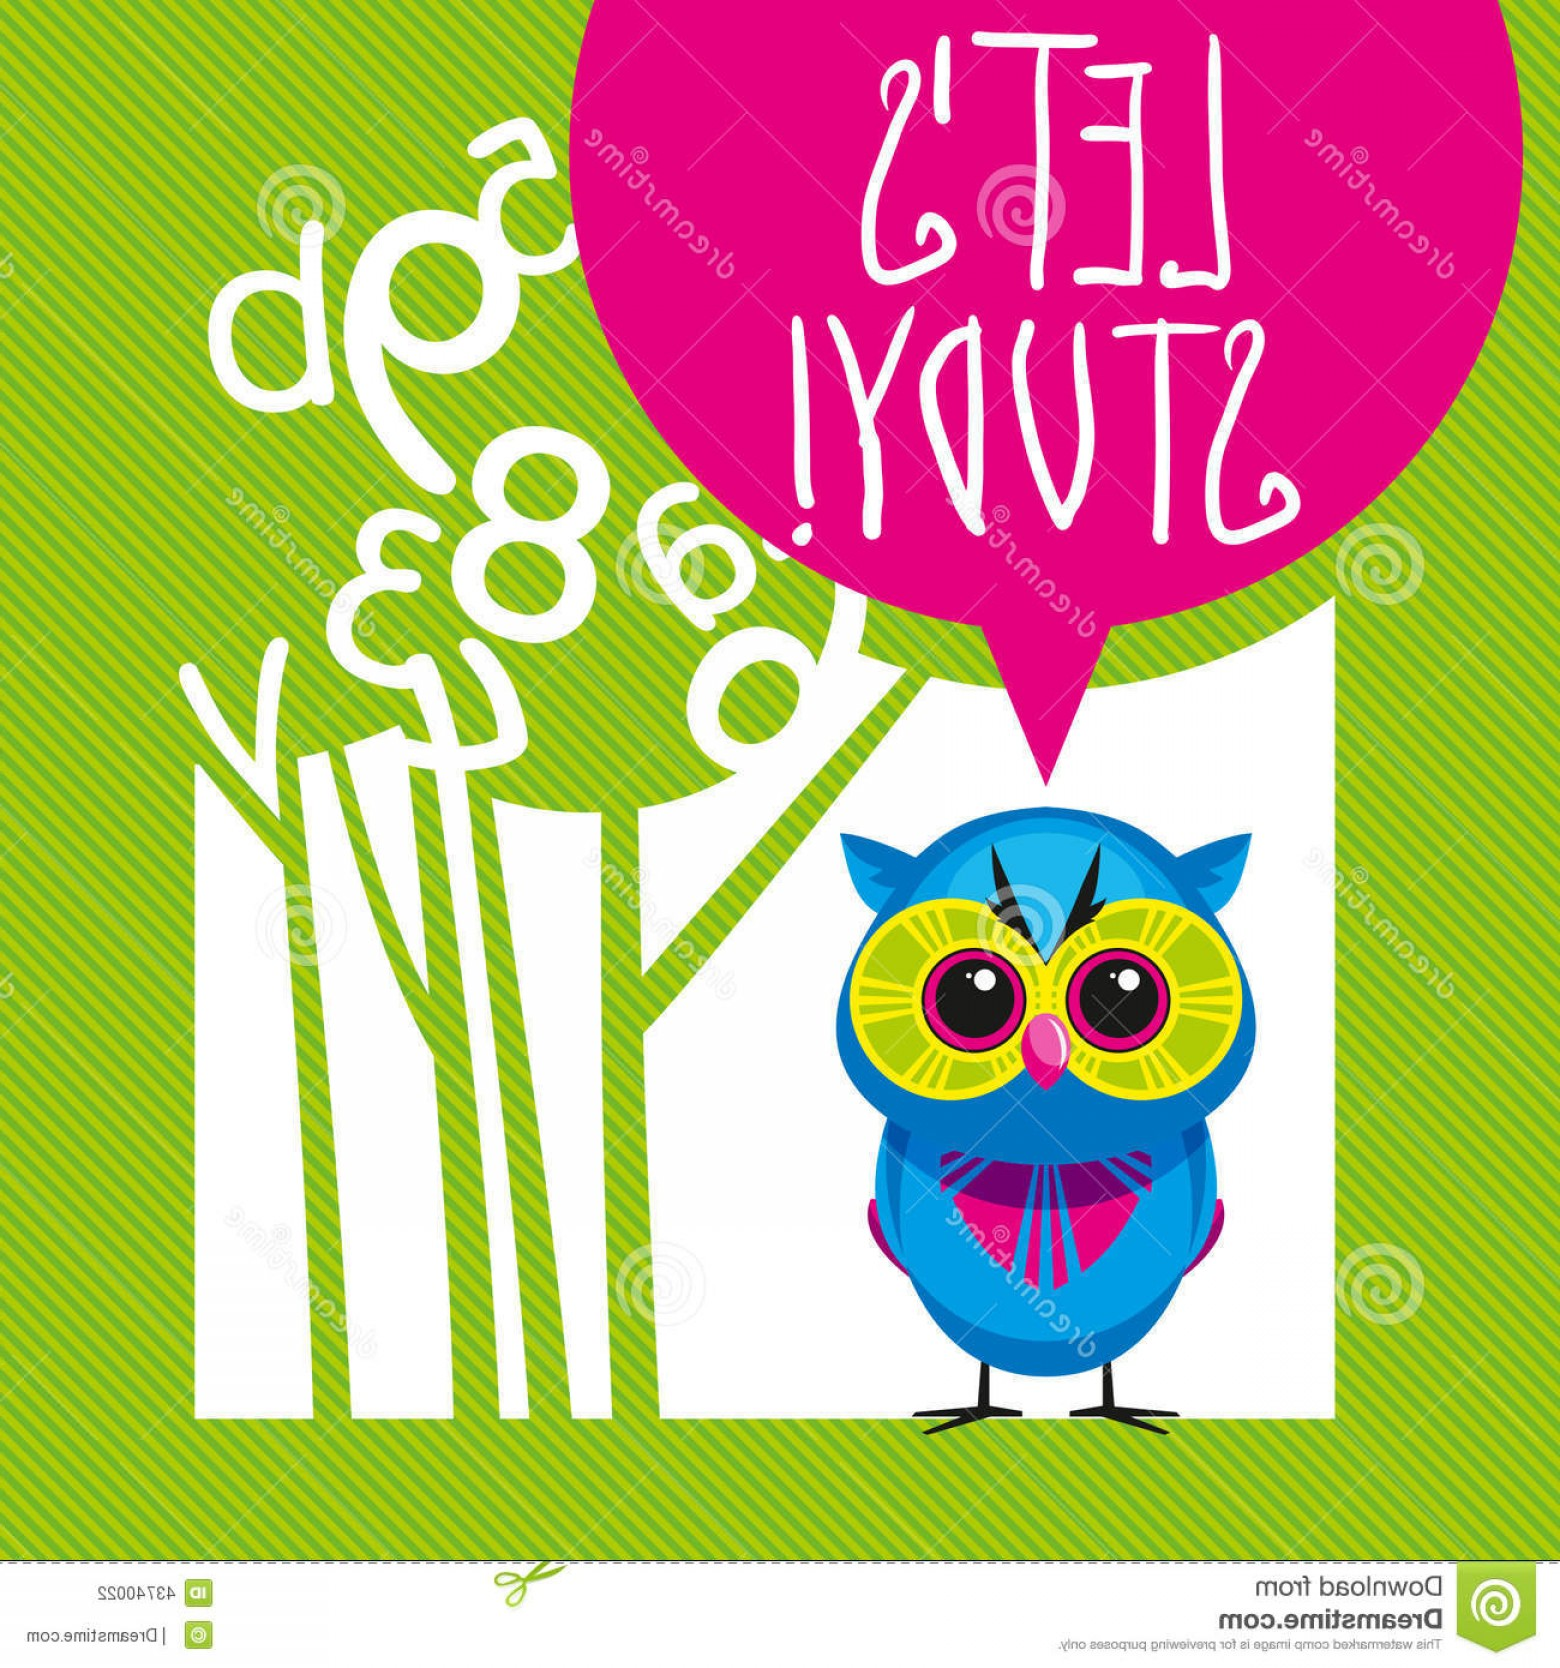 School Themed Vector: Stock Illustration School Theme Illustration Lets Study Cute Vector Background Tree Owl Image